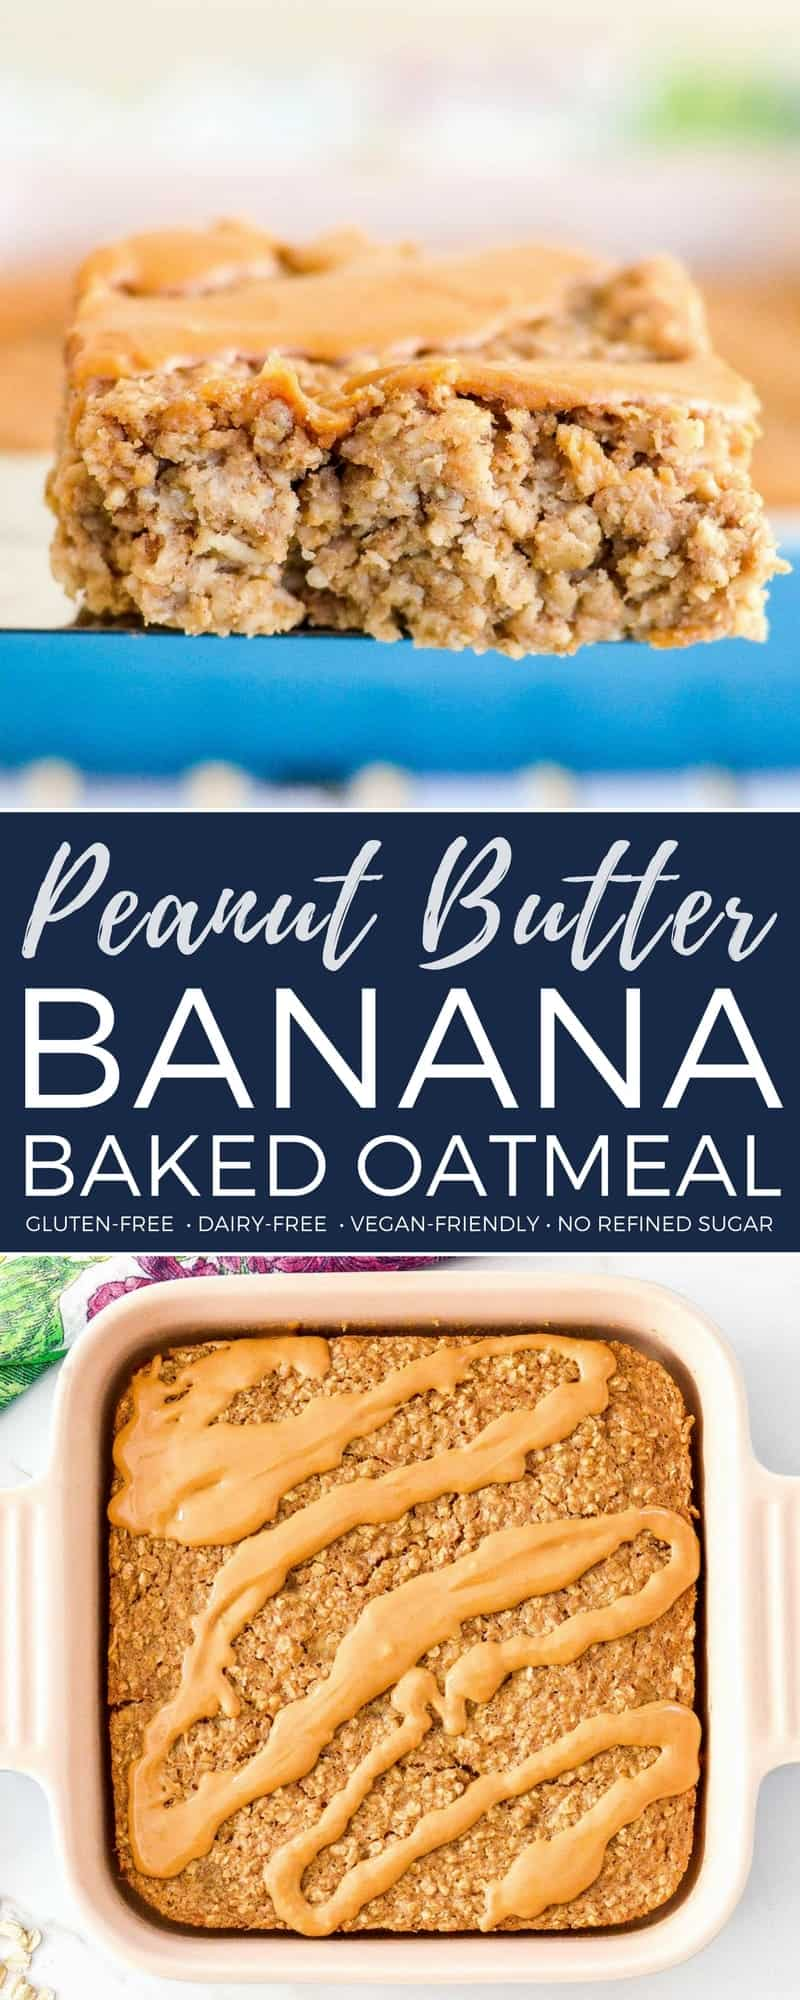 This Healthy Peanut Butter Banana Baked Oatmeal is the perfect make-ahead breakfast recipe! It's gluten-free, dairy-free, & vegan-friendly with no refined sugar! #peanutbutter #bakedoatmeal #banana #breakfast #recipe #glutenfree #dairyfree #veganfriendly #kidfriendly #healthyrecipe